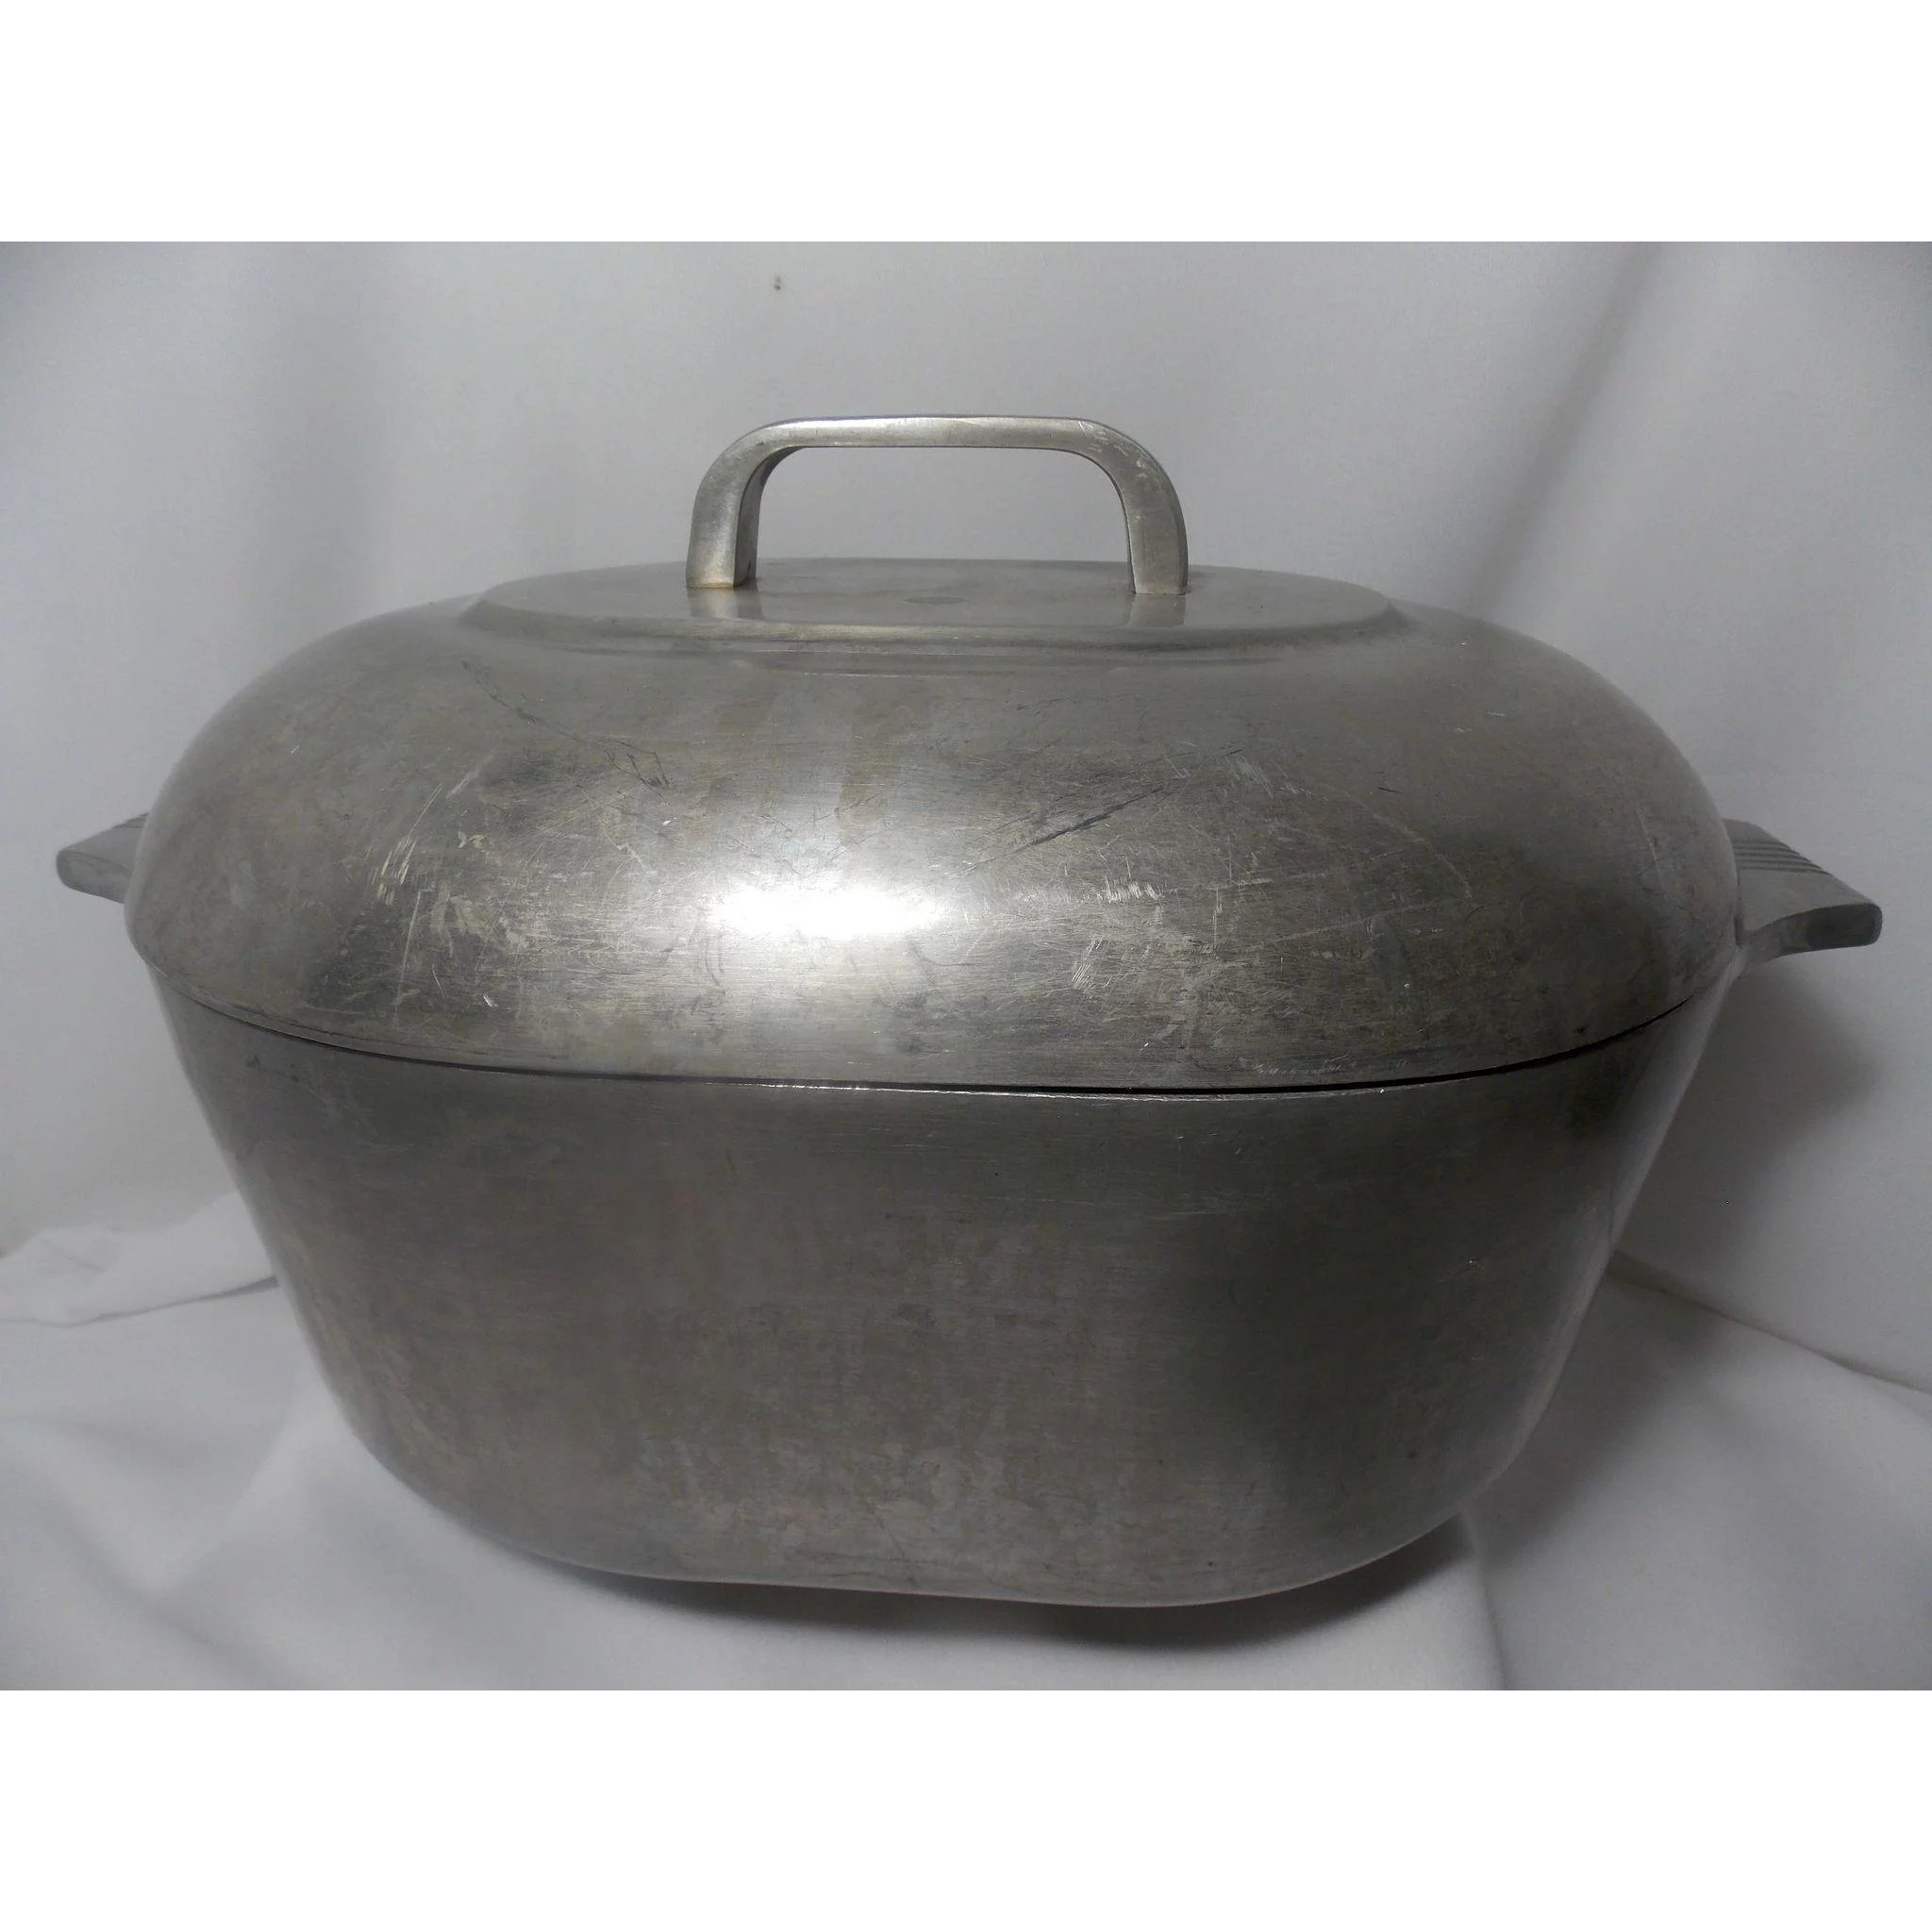 Vintage wagner ware magnalite 4265 p roaster pan with lid ma prices attic ruby lane